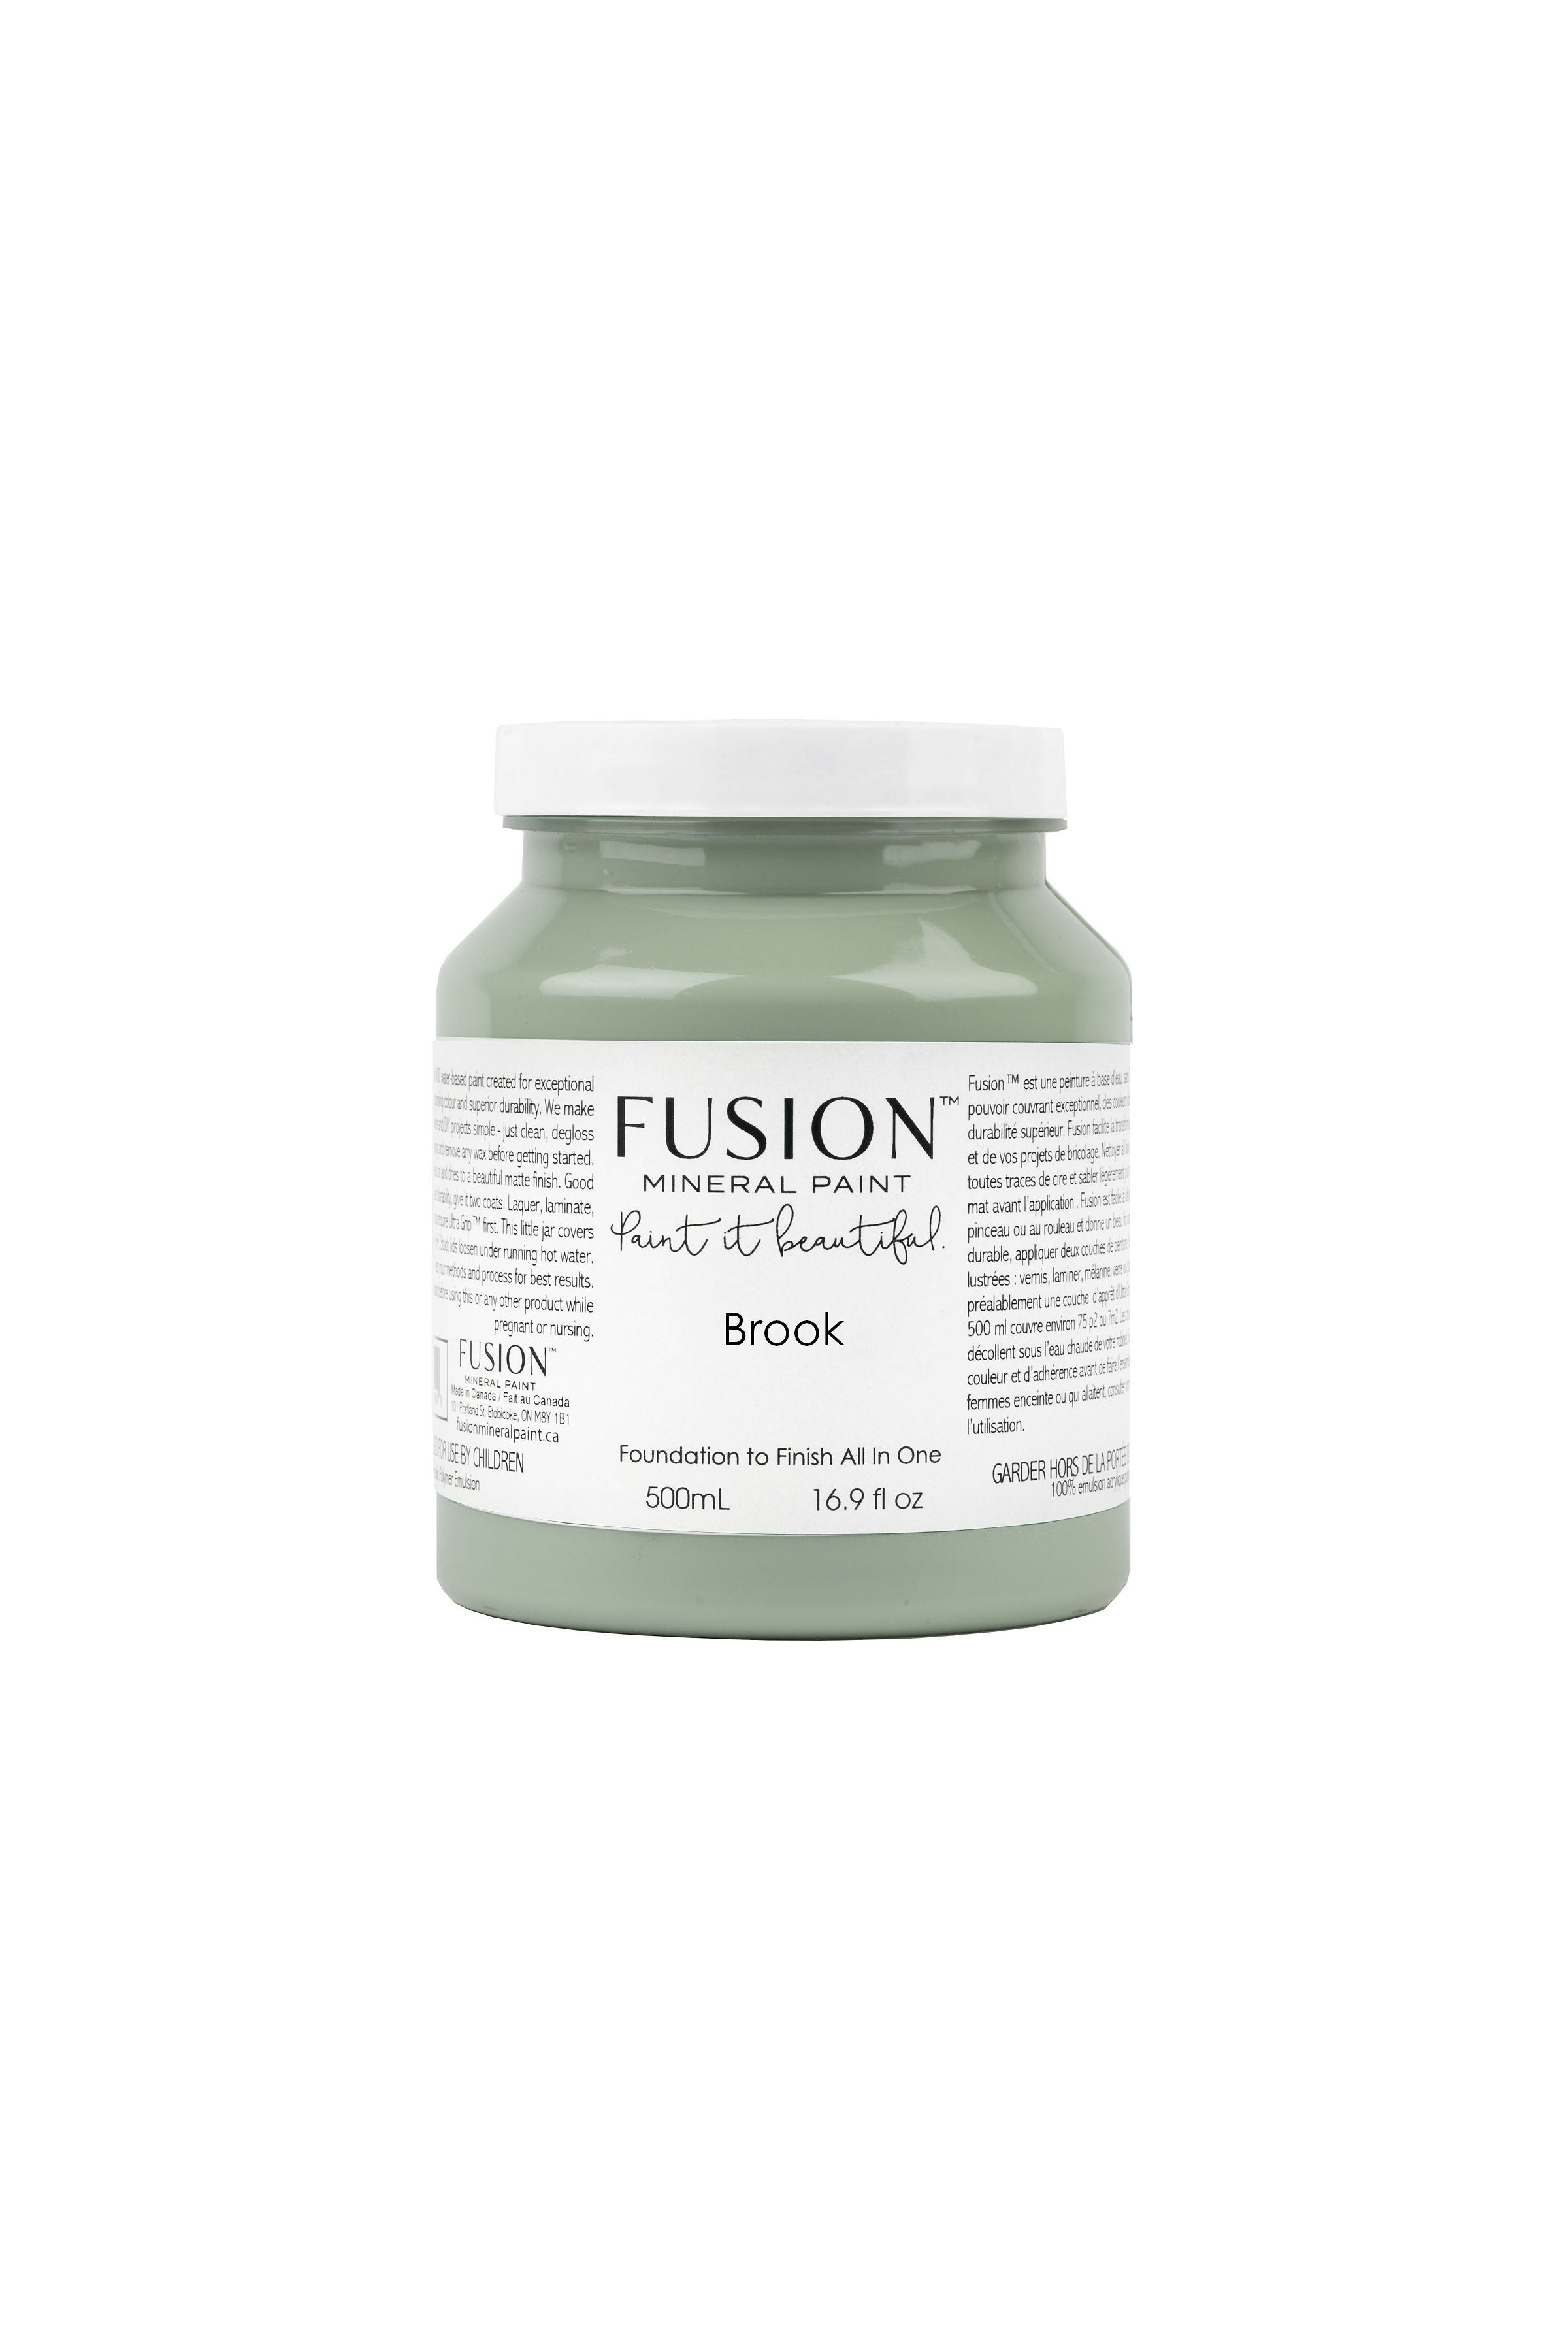 Brook - Fusion Mineral Paint - 500ml Pint